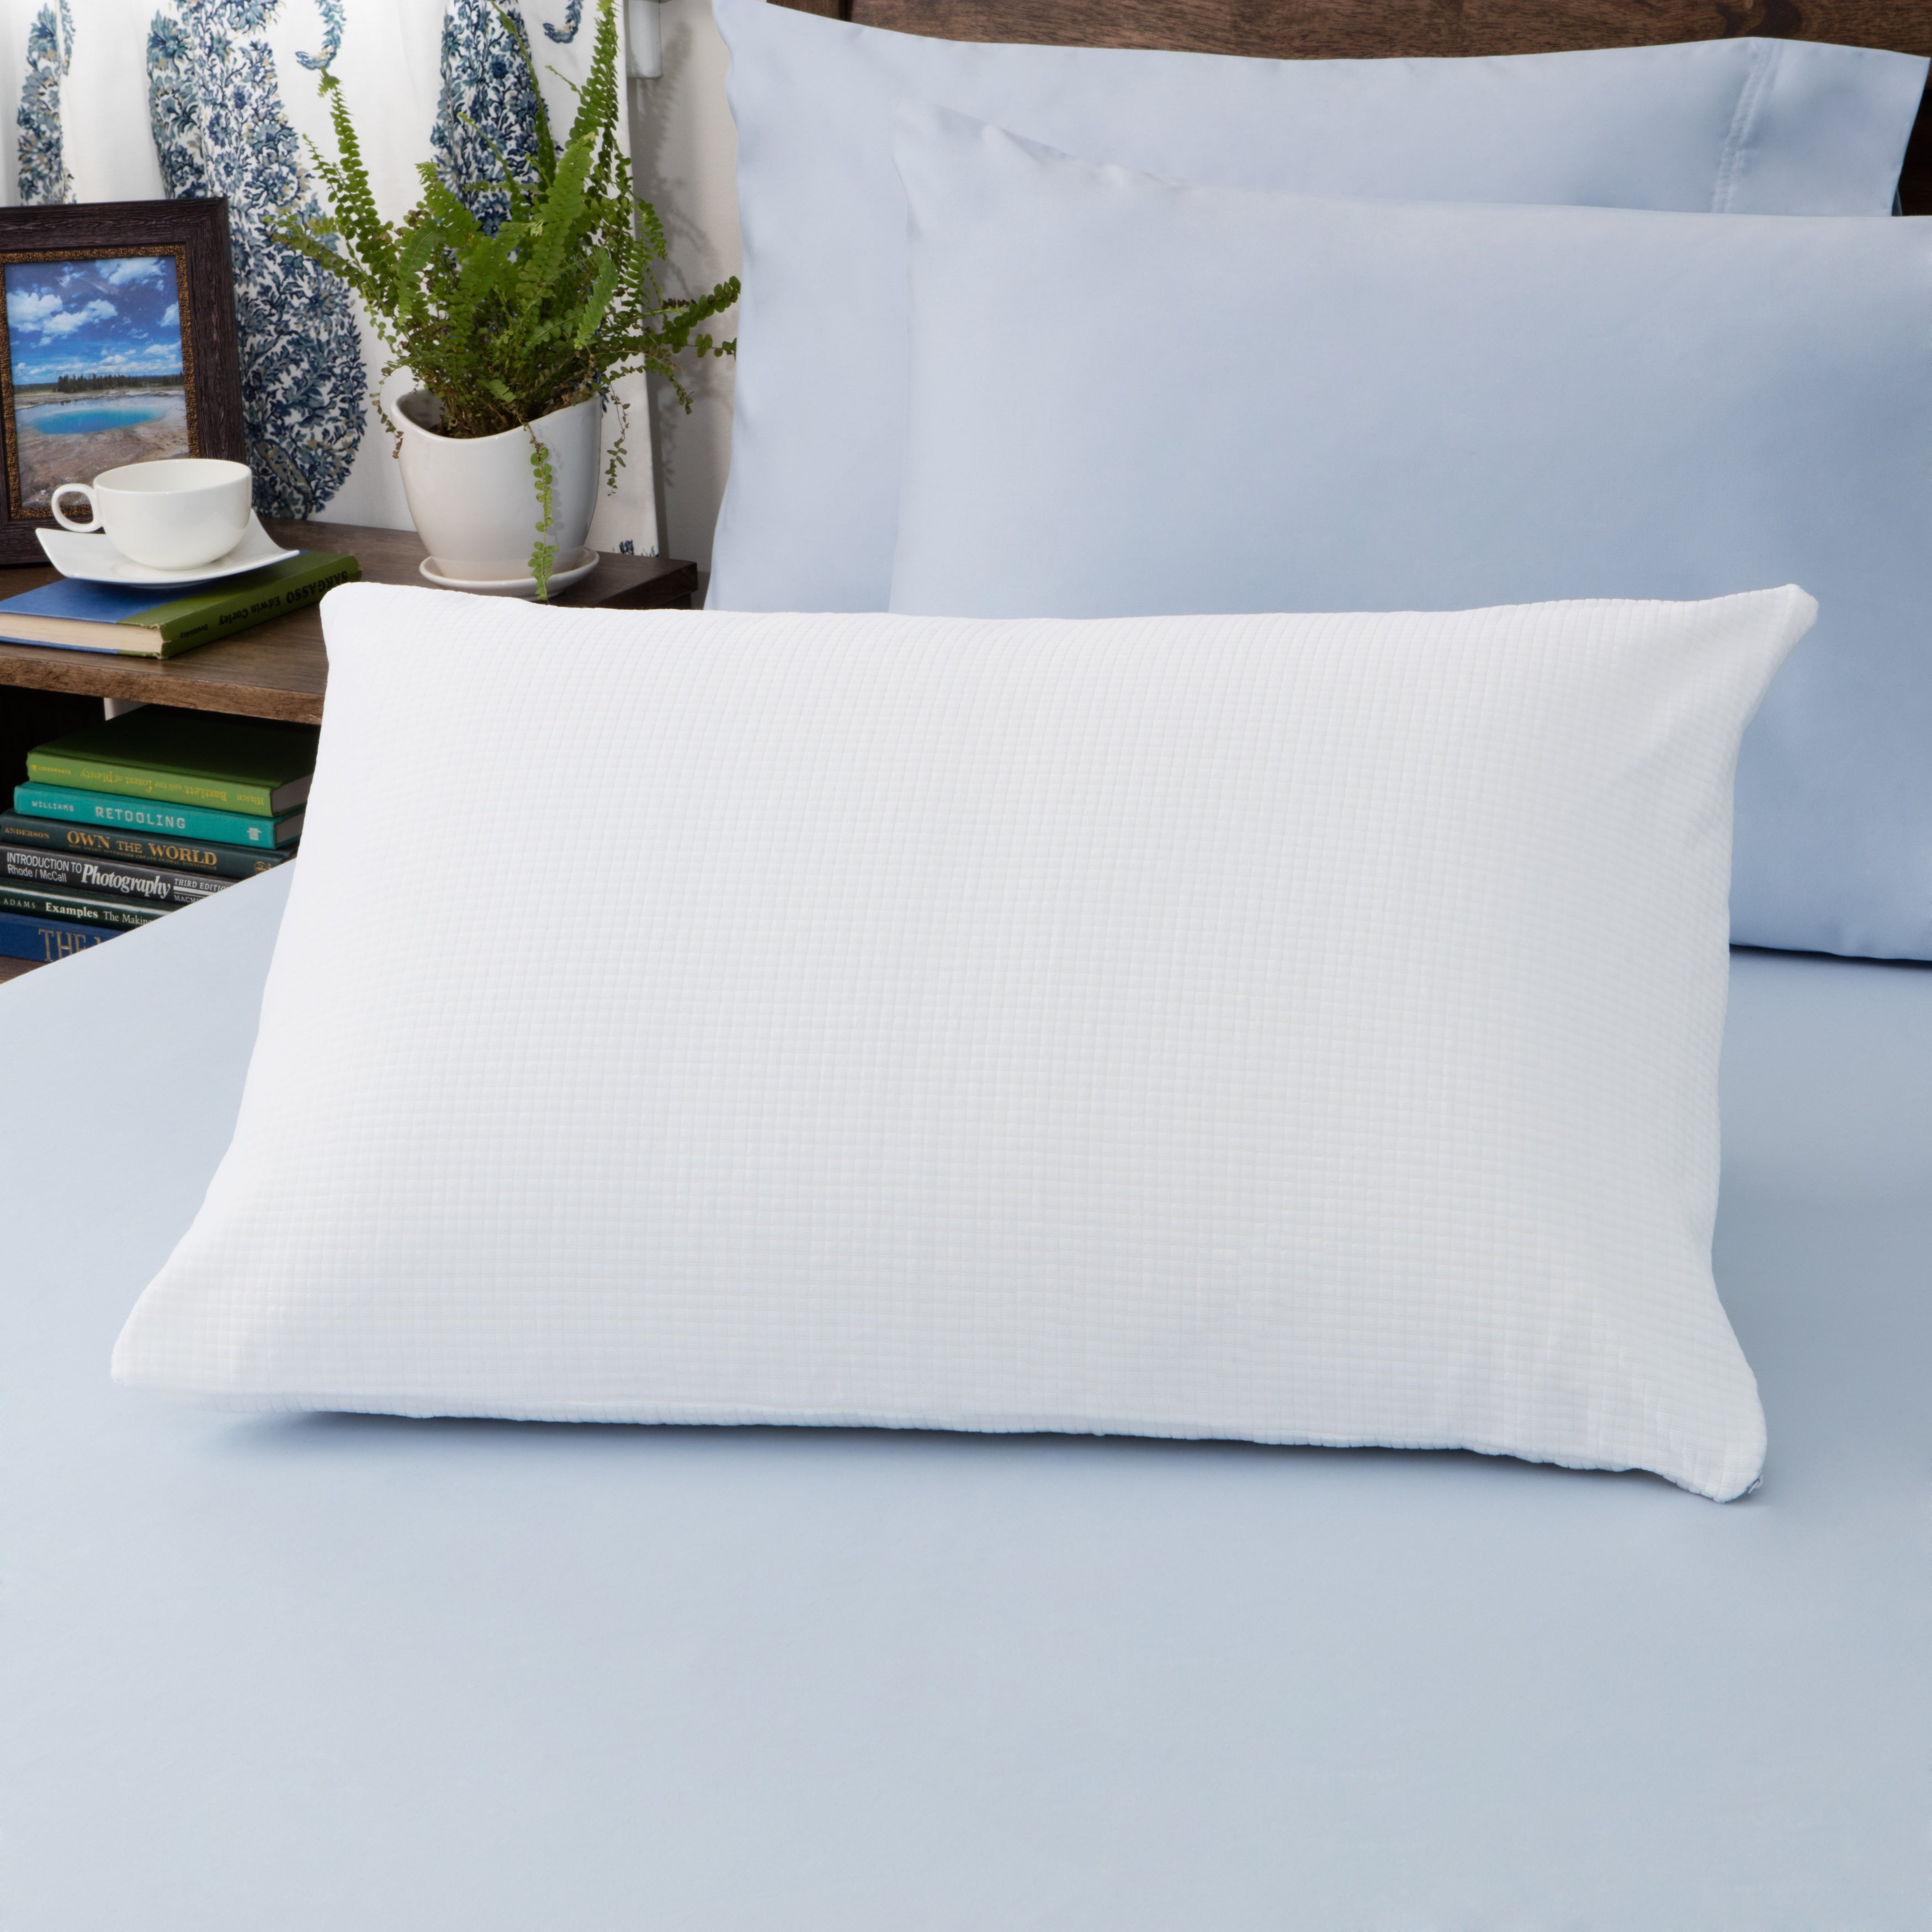 embroidery pillow zuleta selling welcome to best products